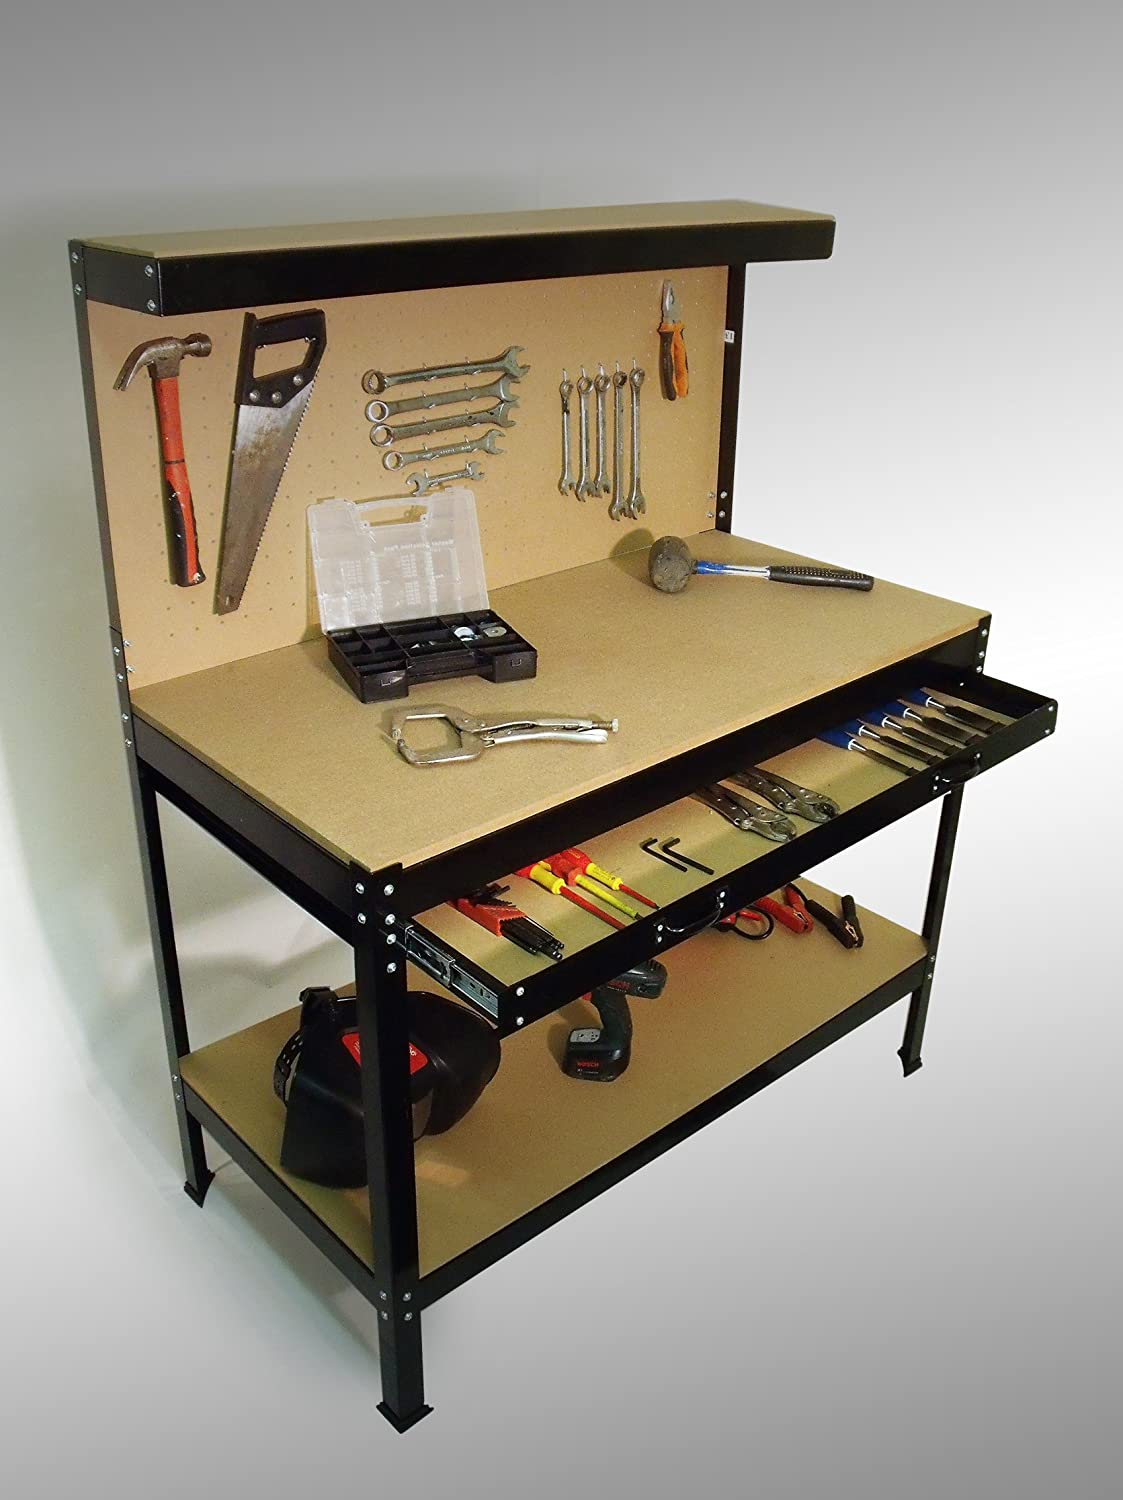 Tool Benches Garage : Heavy duty garage workshop work bench station pegboard